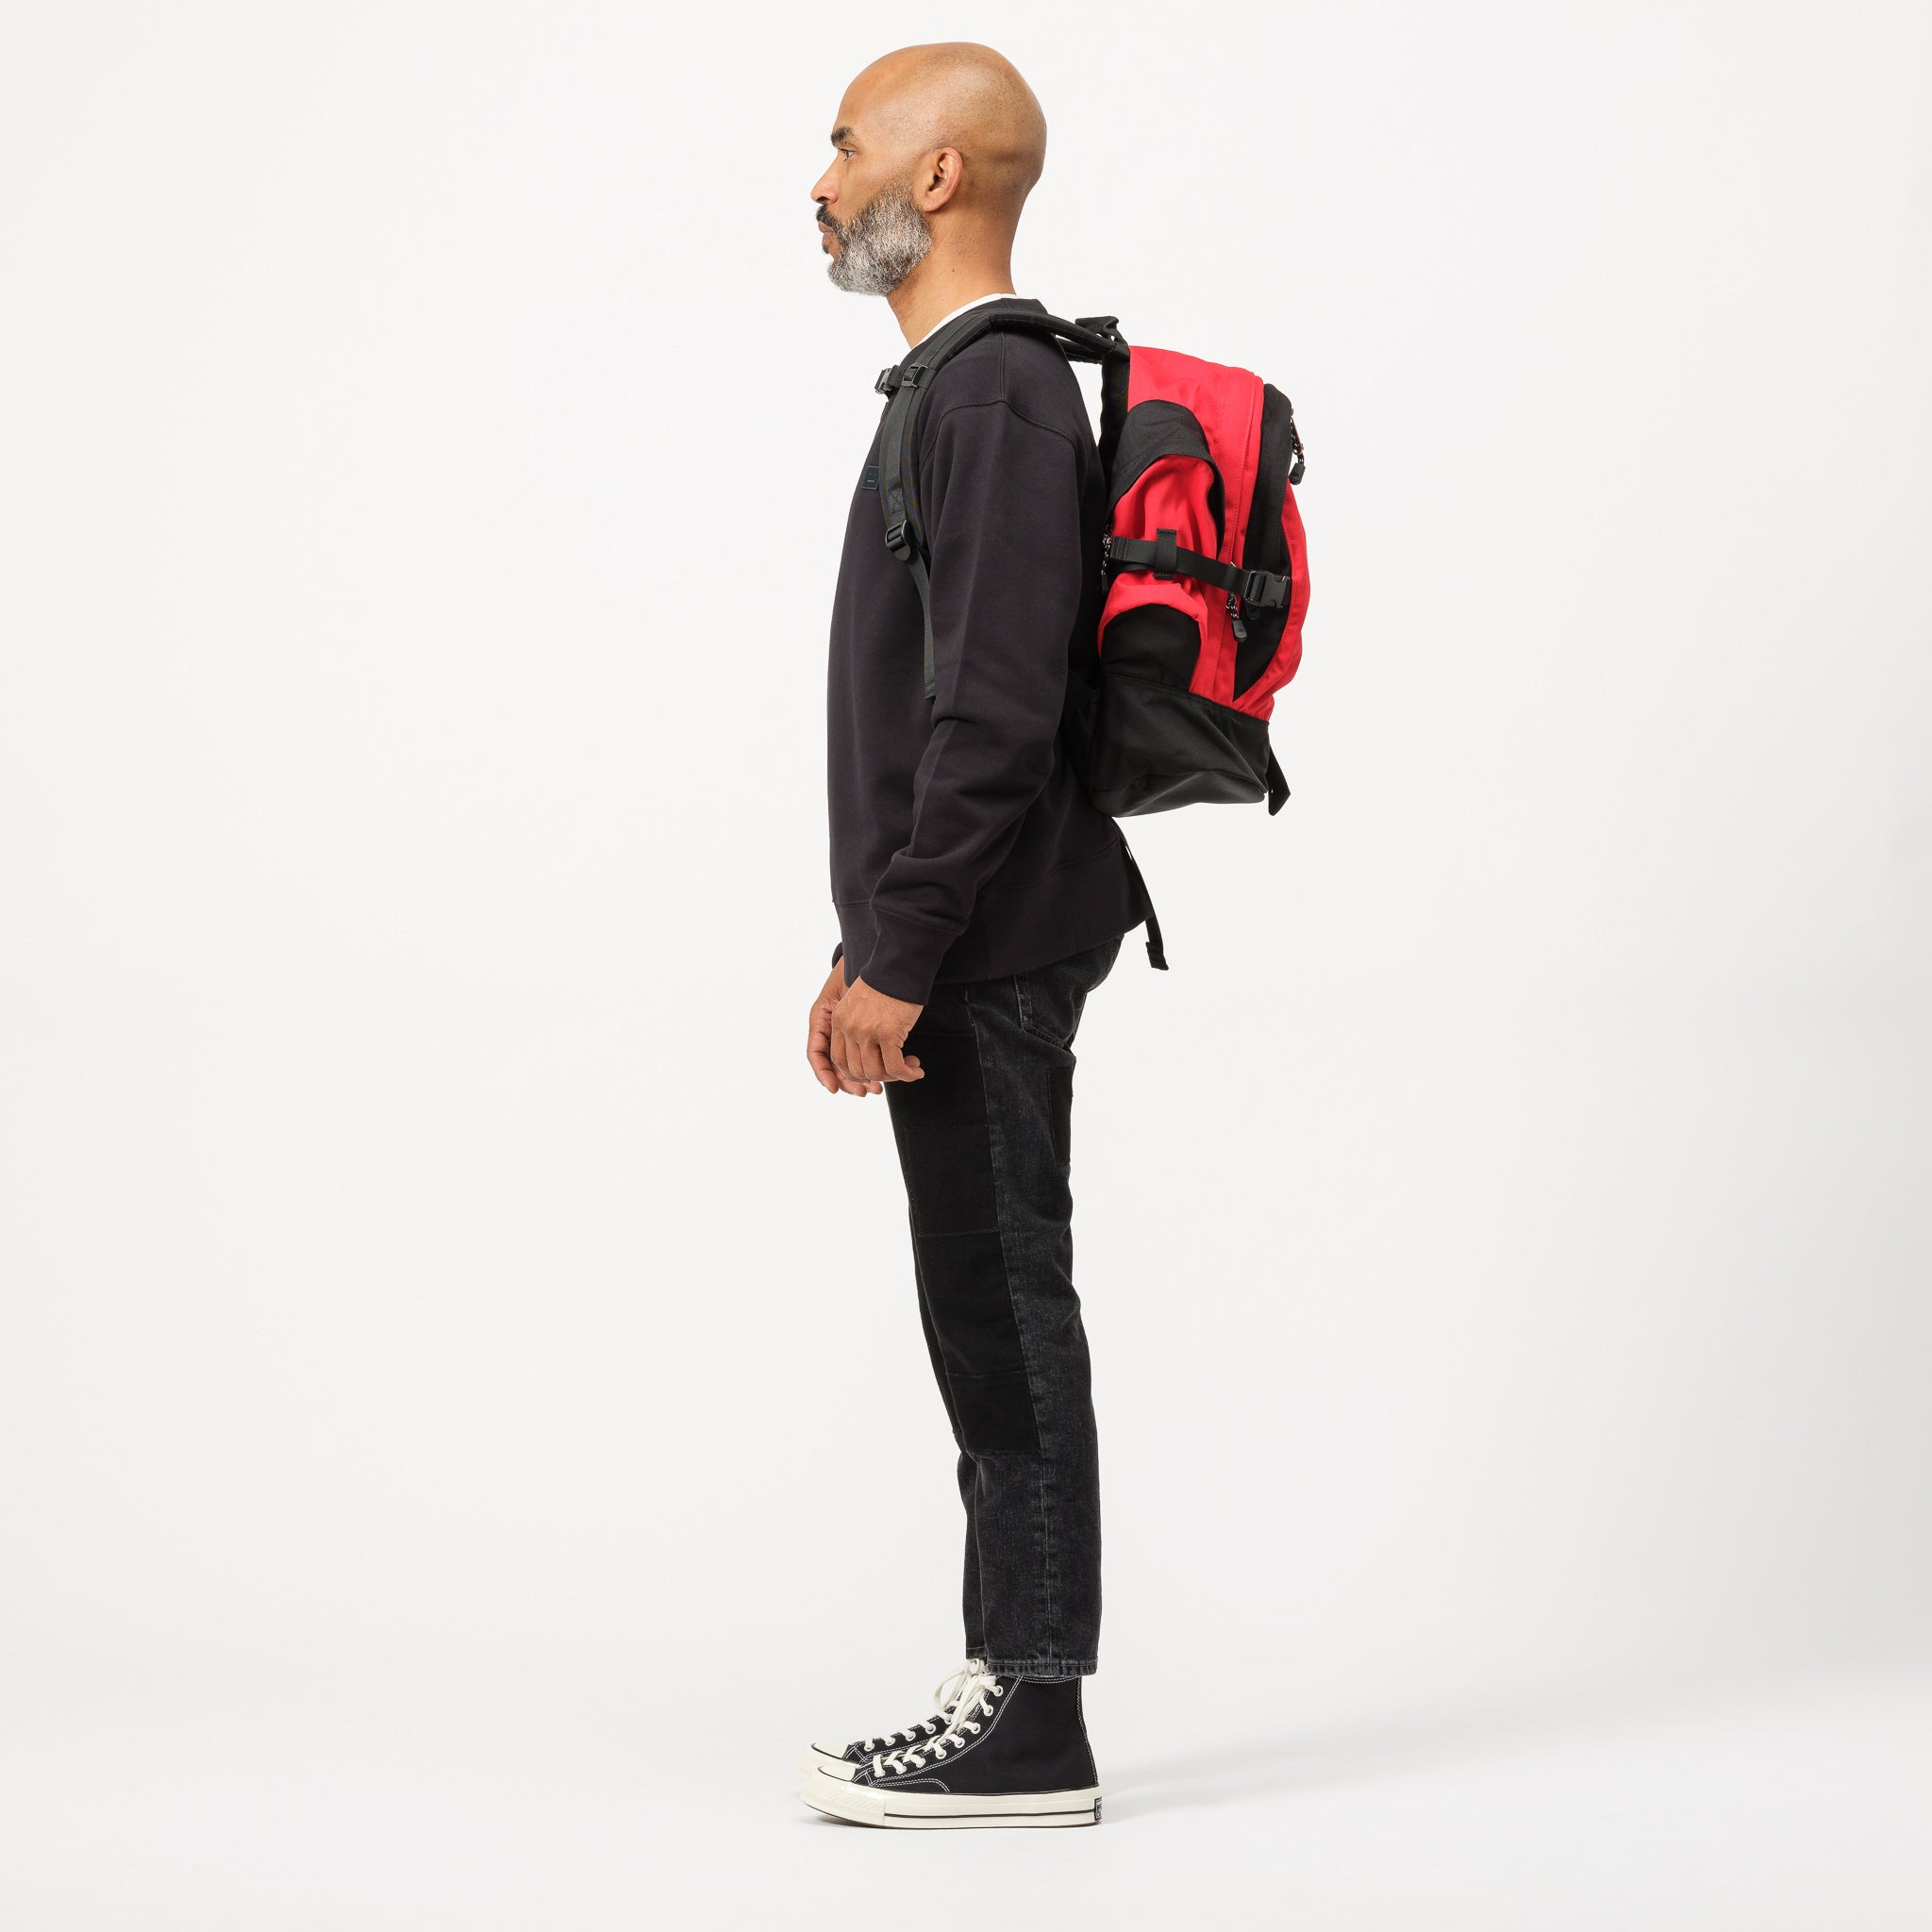 Wasatch Reissue Backpack in Red/Black